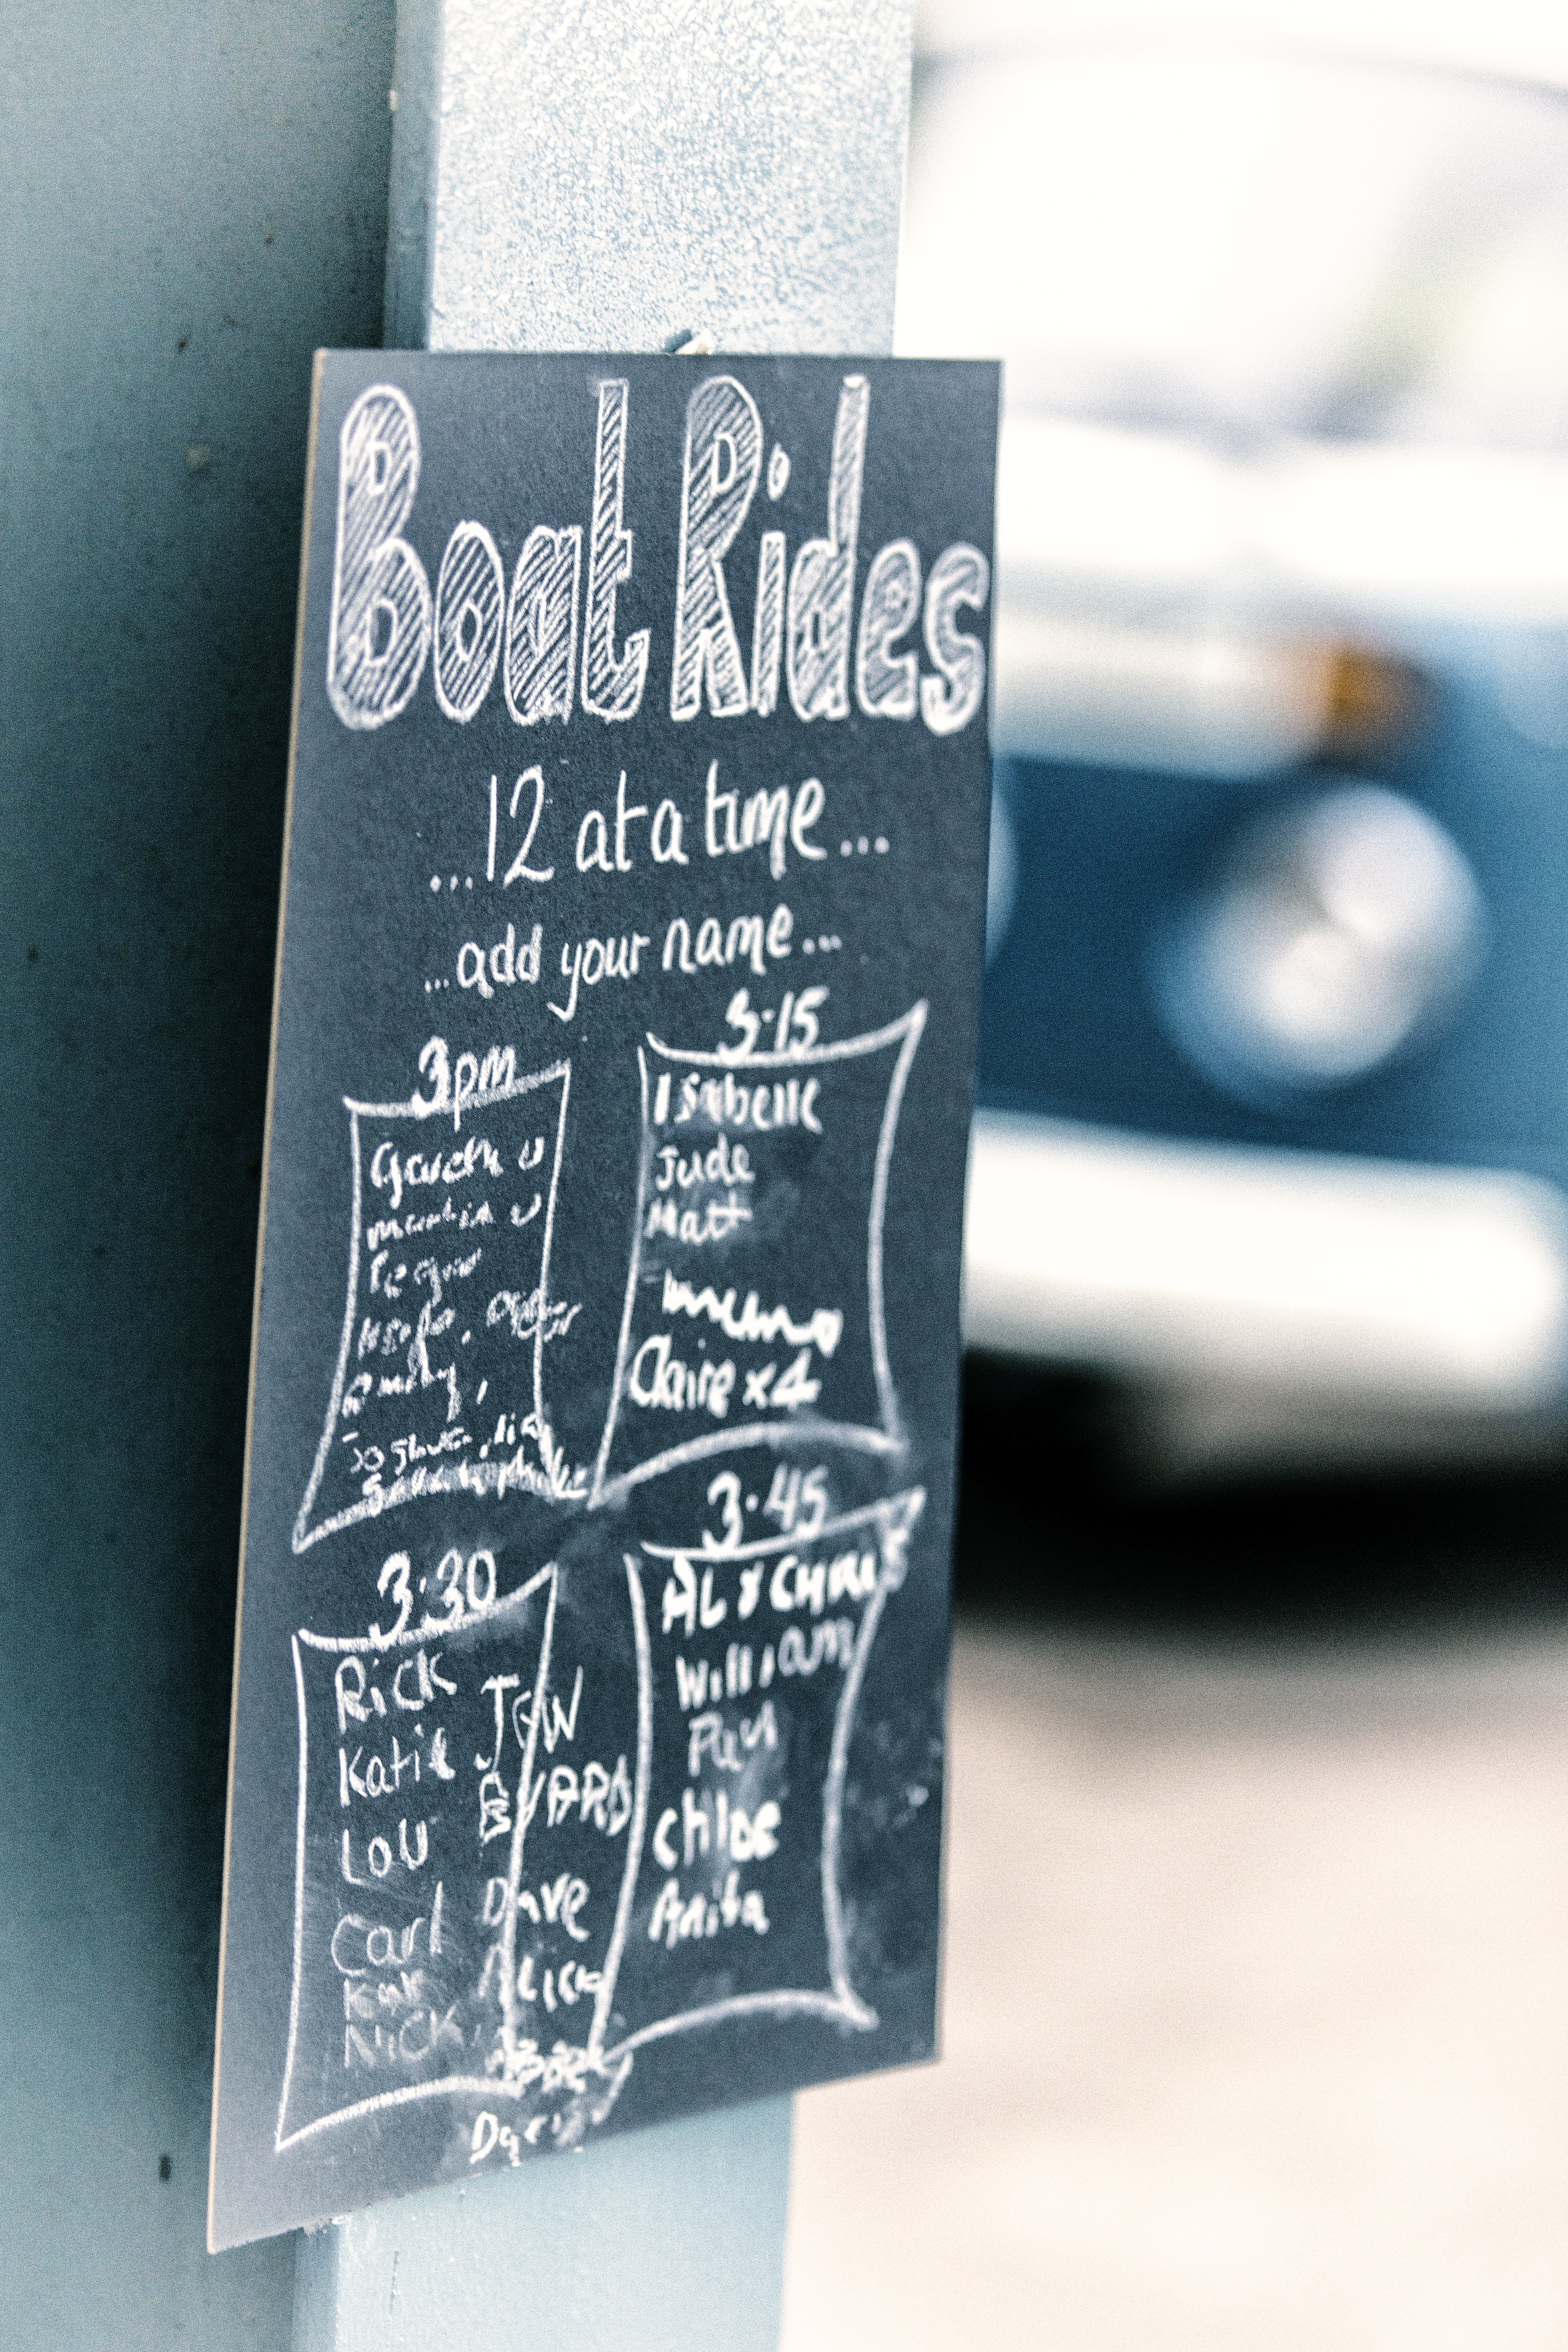 boat_rides_sign